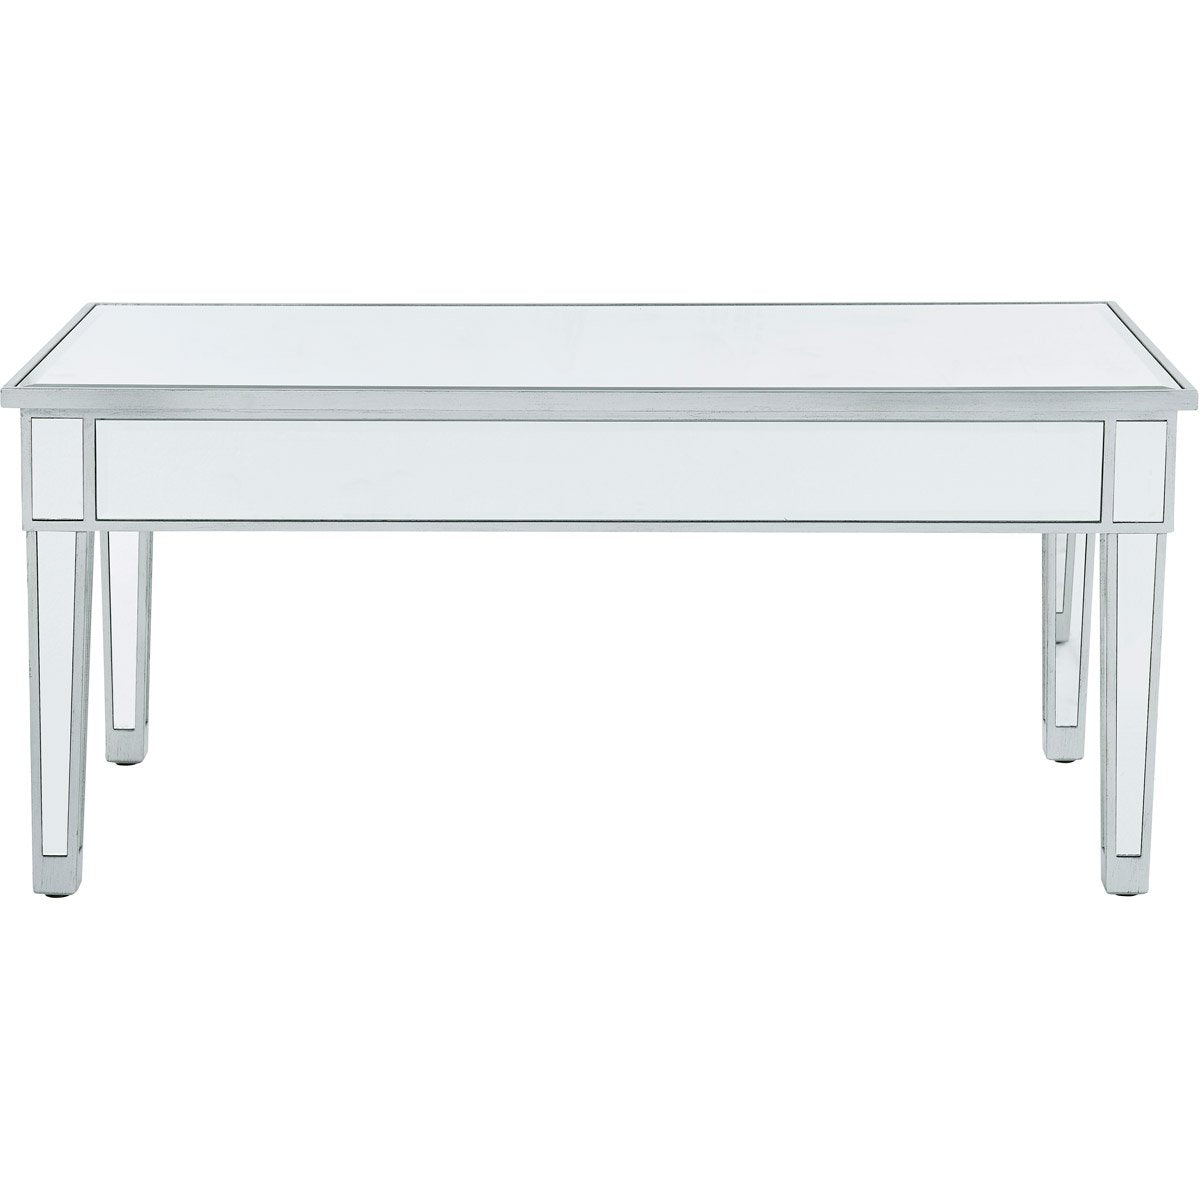 Reflexion 40 X 18 Coffee Table - Antique Silver Finish (Mf72021) Coffee Table